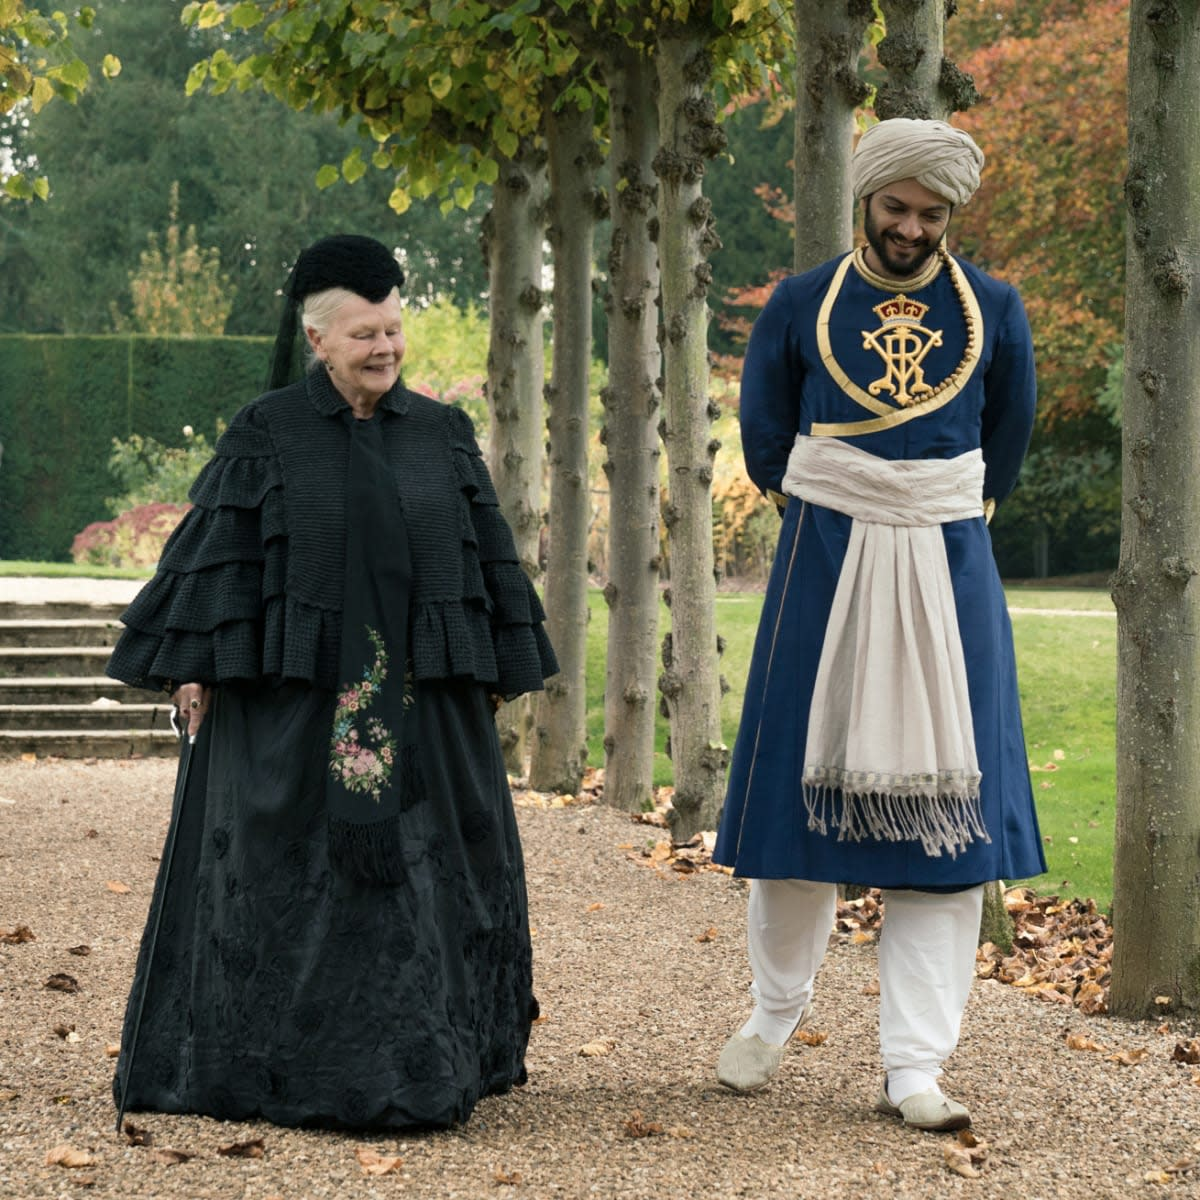 The Fascinating Love Story of Queen Victoria and Abdul